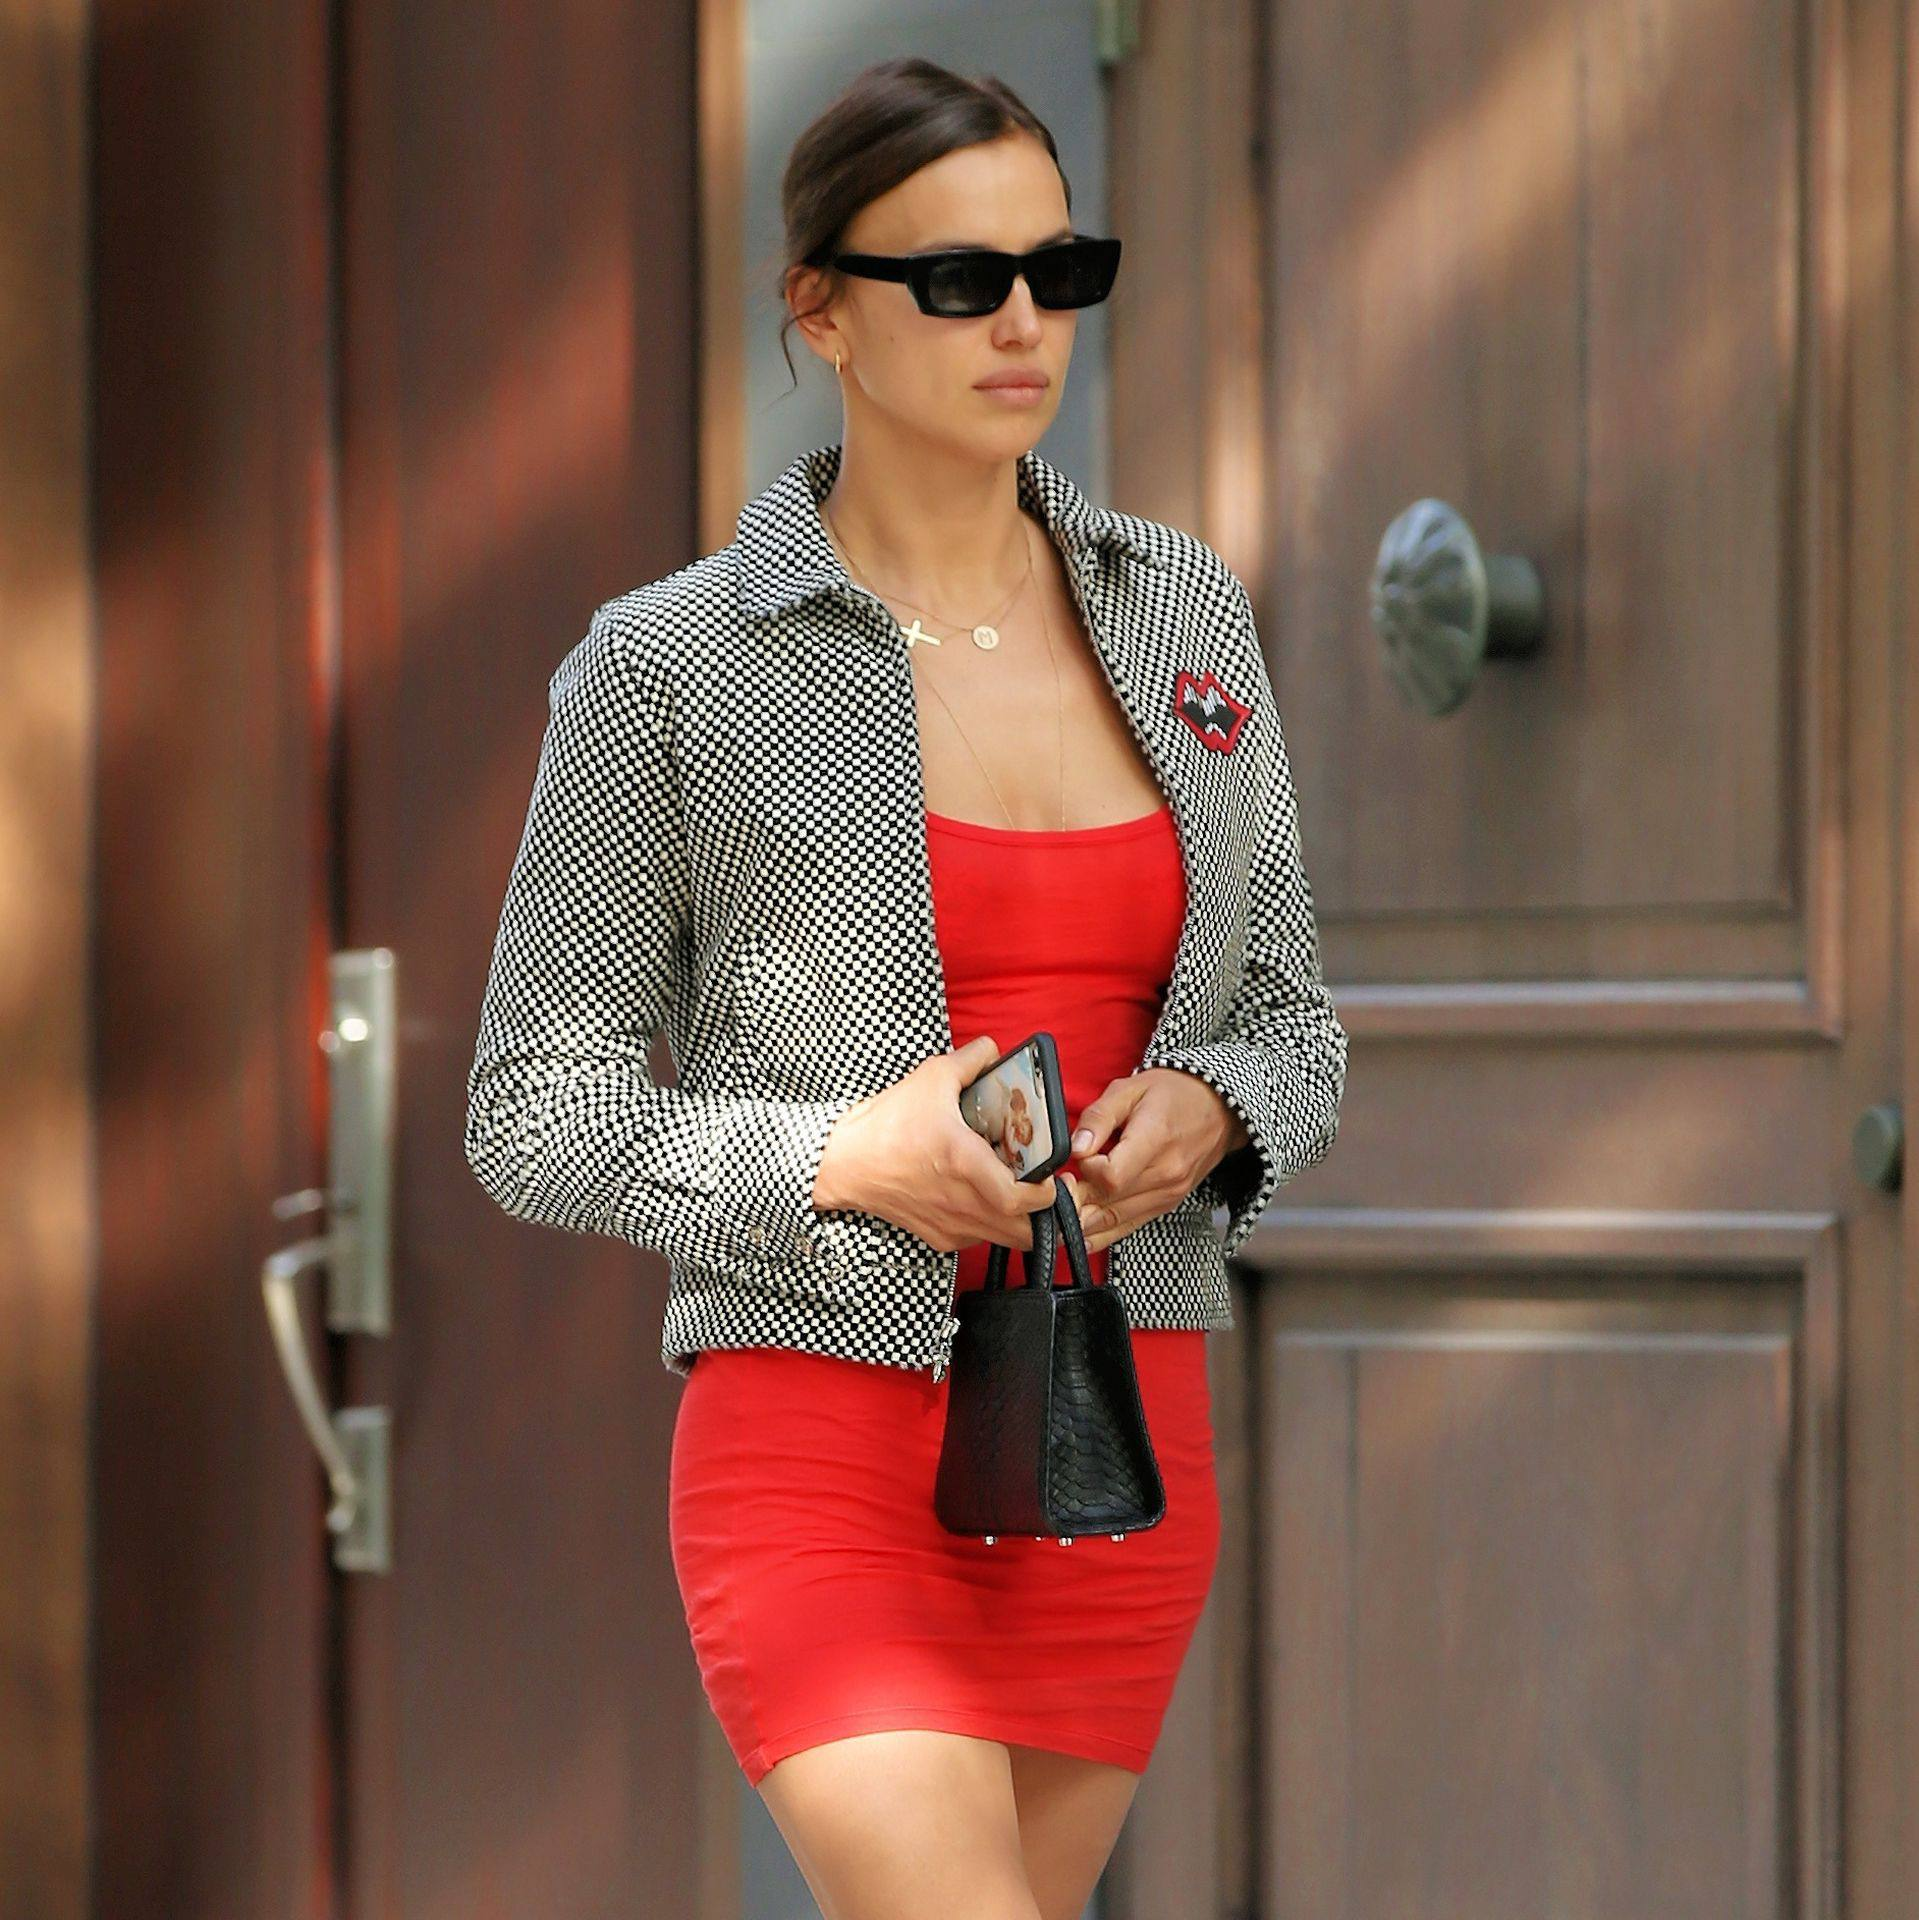 Irina Shayk – Sexy Legs In Short Red Dress Out In New York 0002